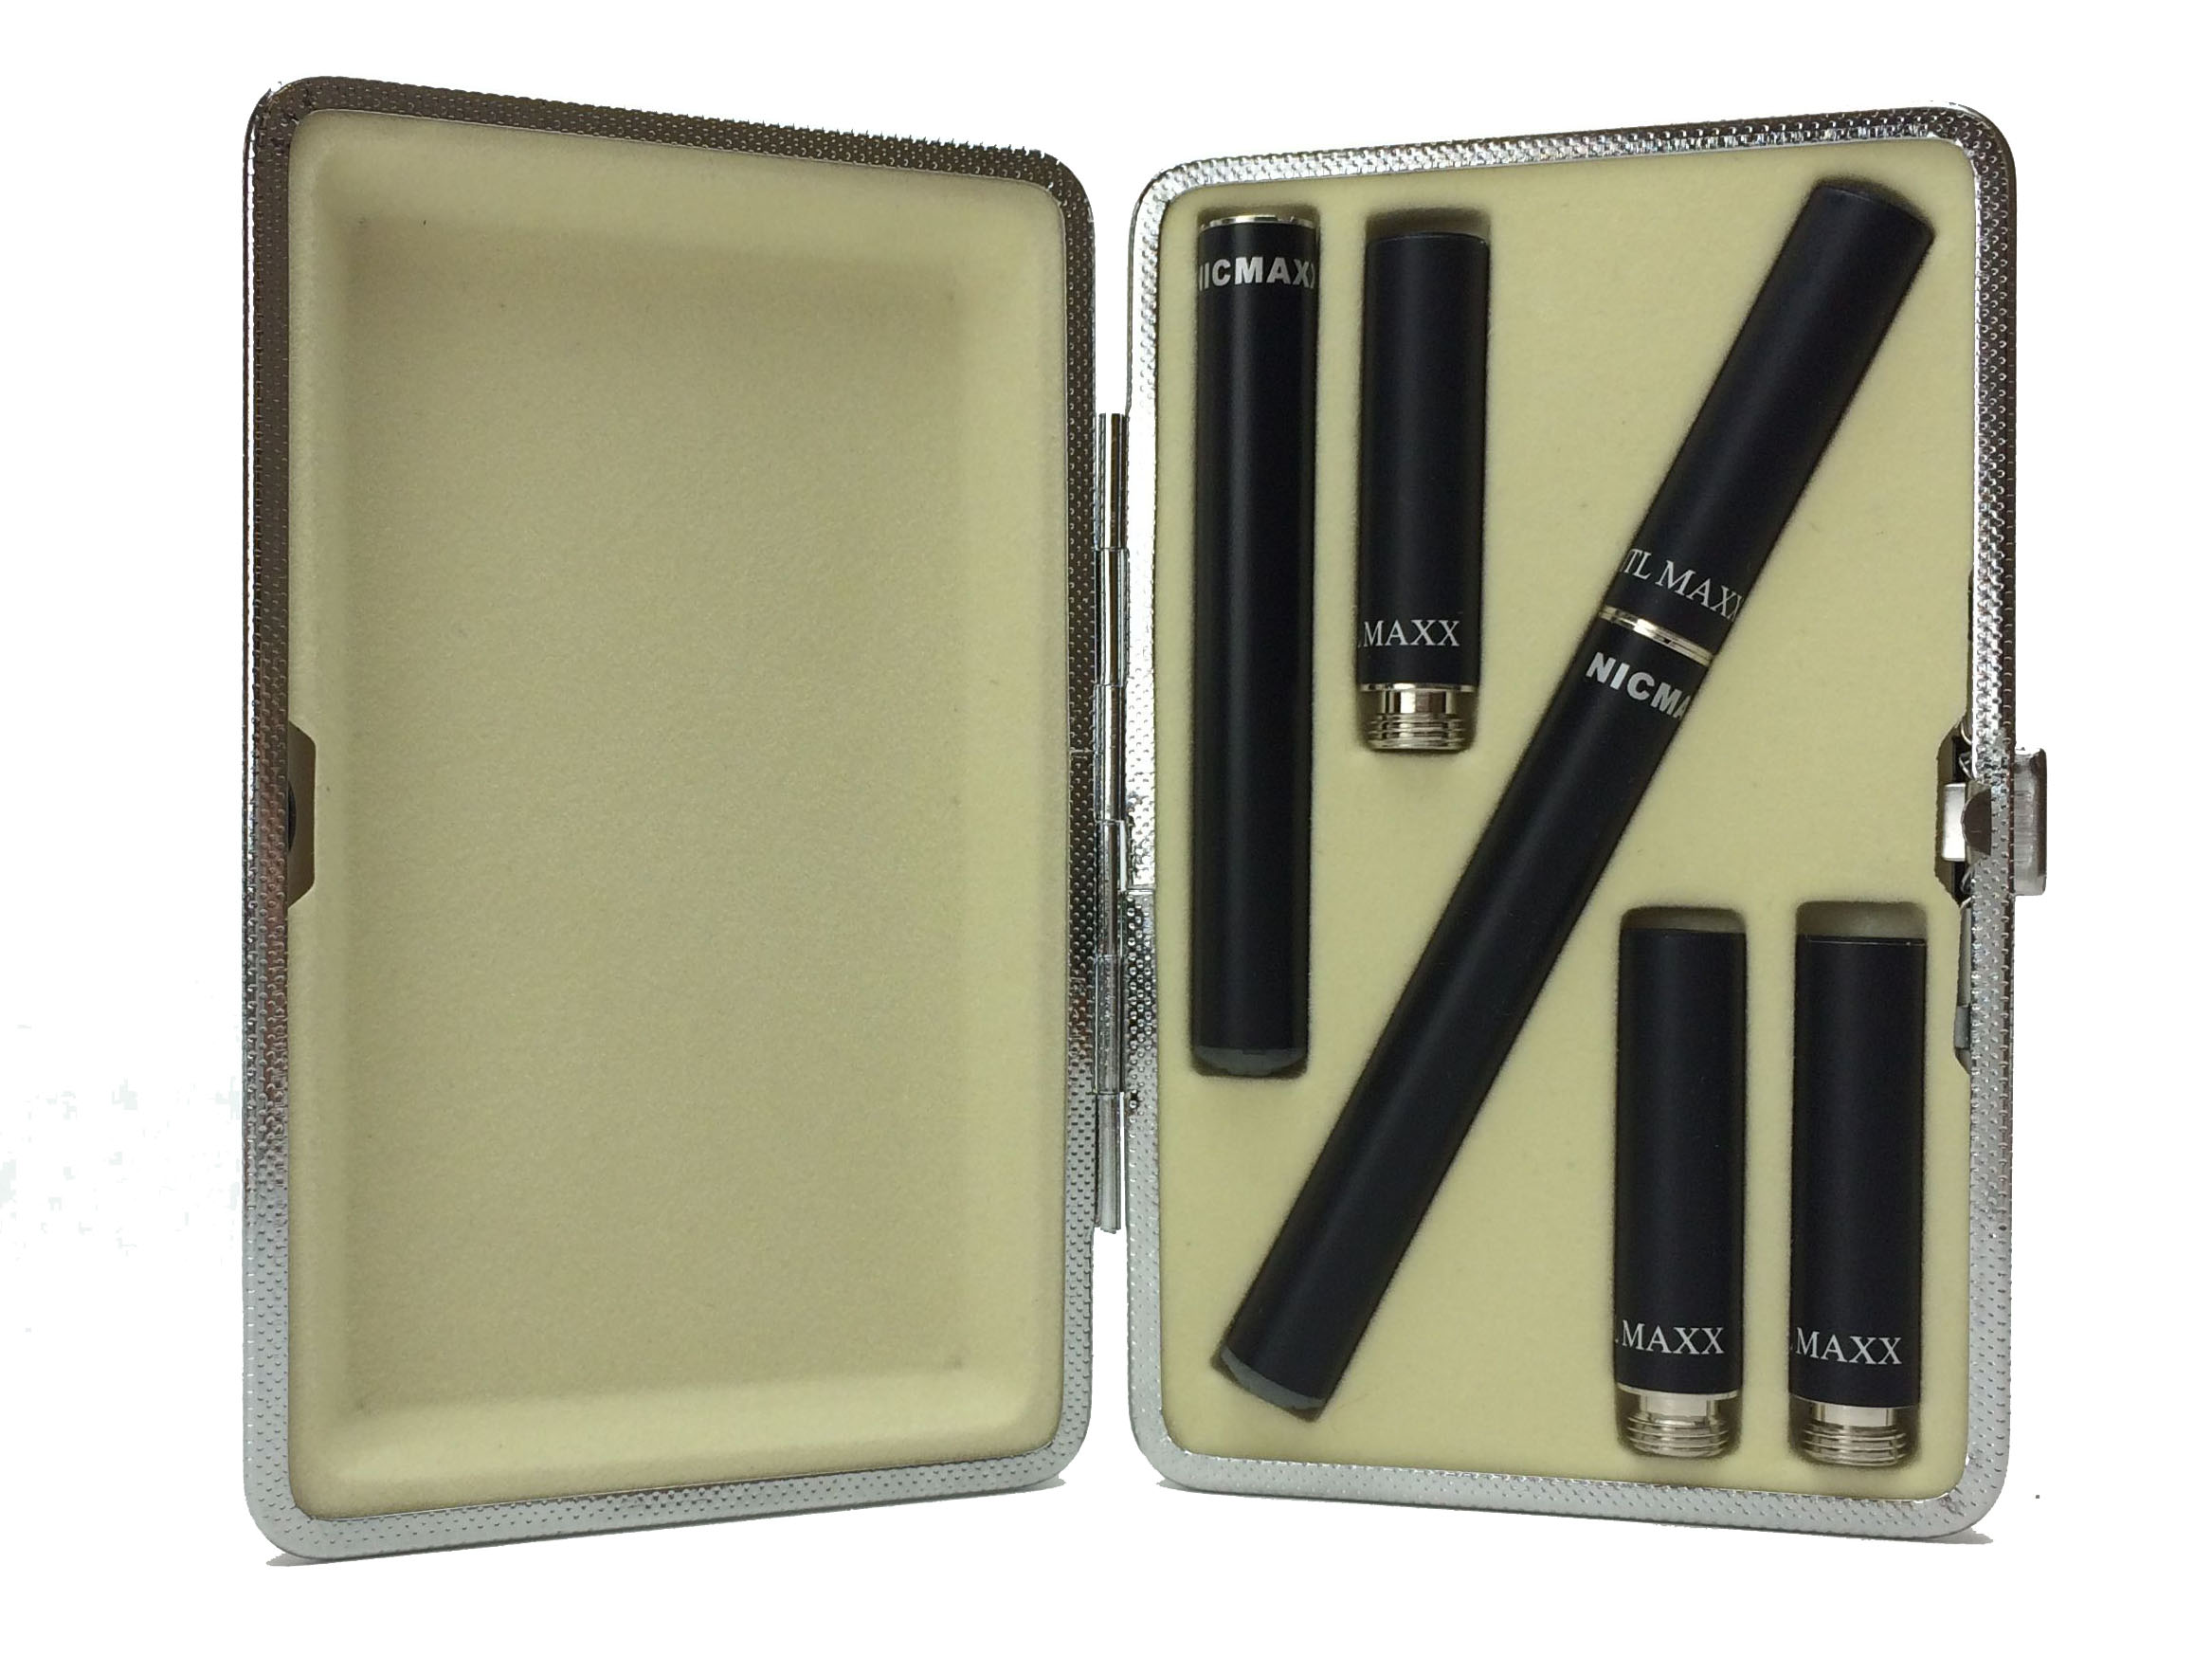 e-cig-carrying-case-inside.jpg